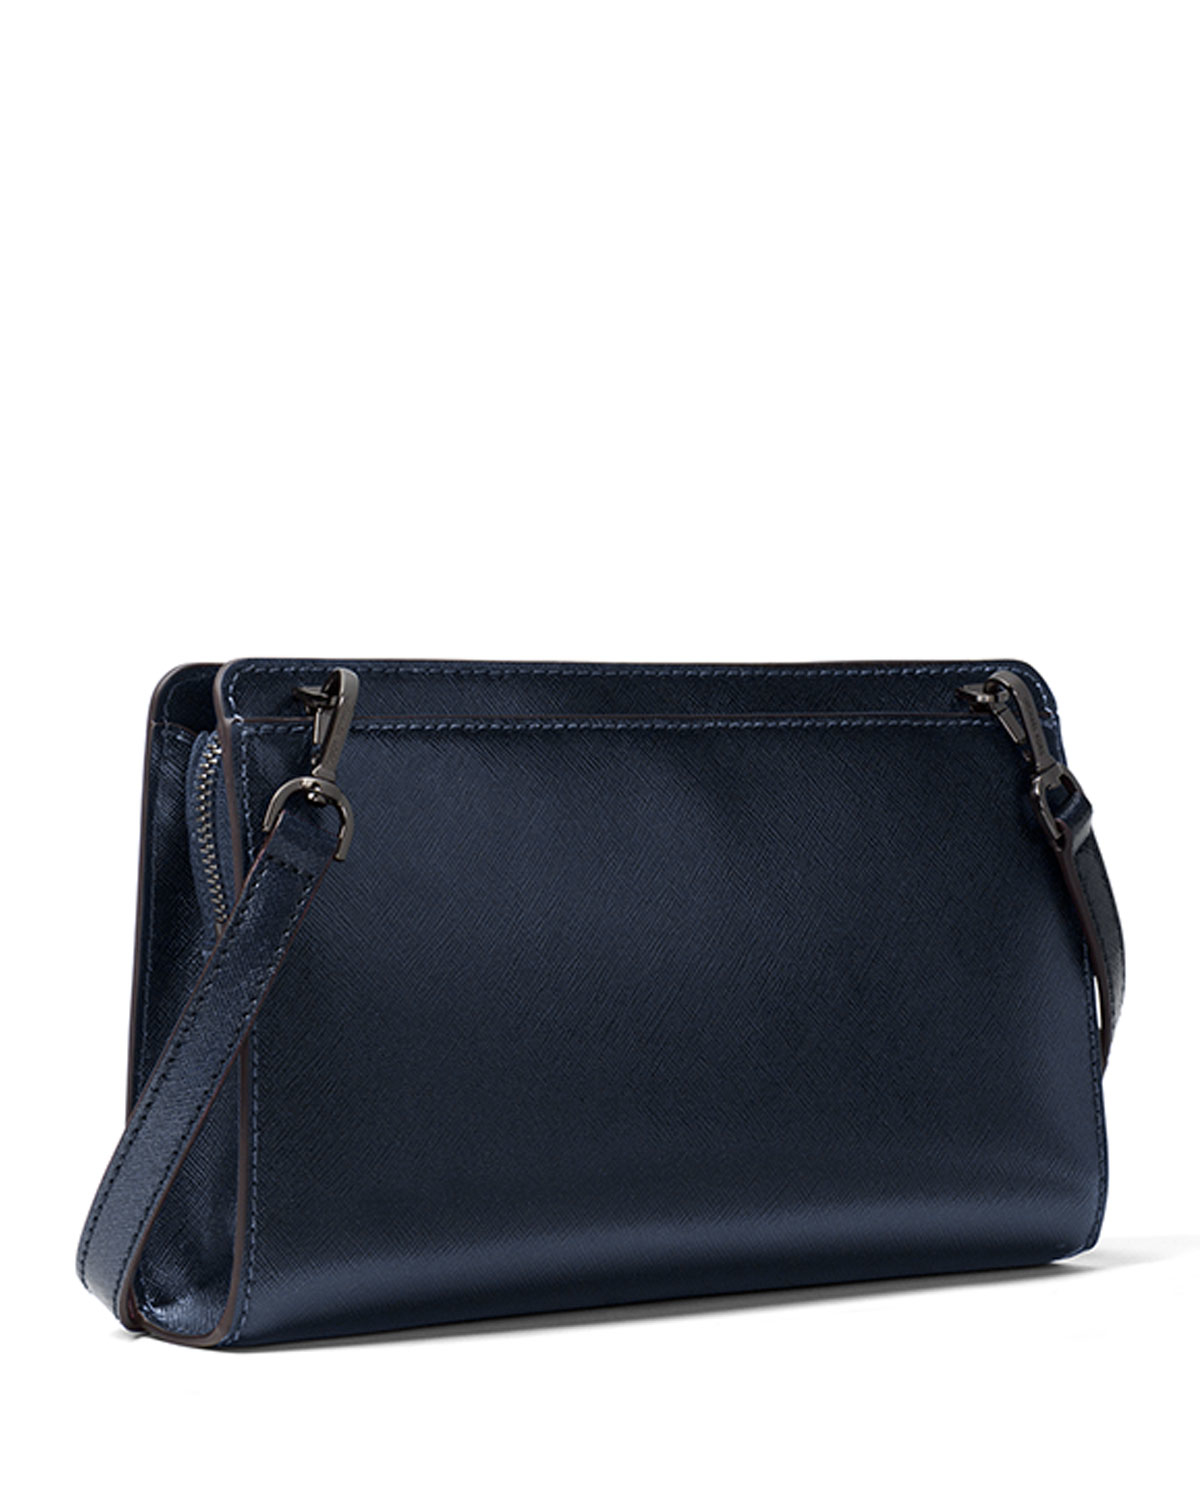 c472deac8d3013 Michael Kors Crossbody Clutch Bag | Stanford Center for Opportunity ...